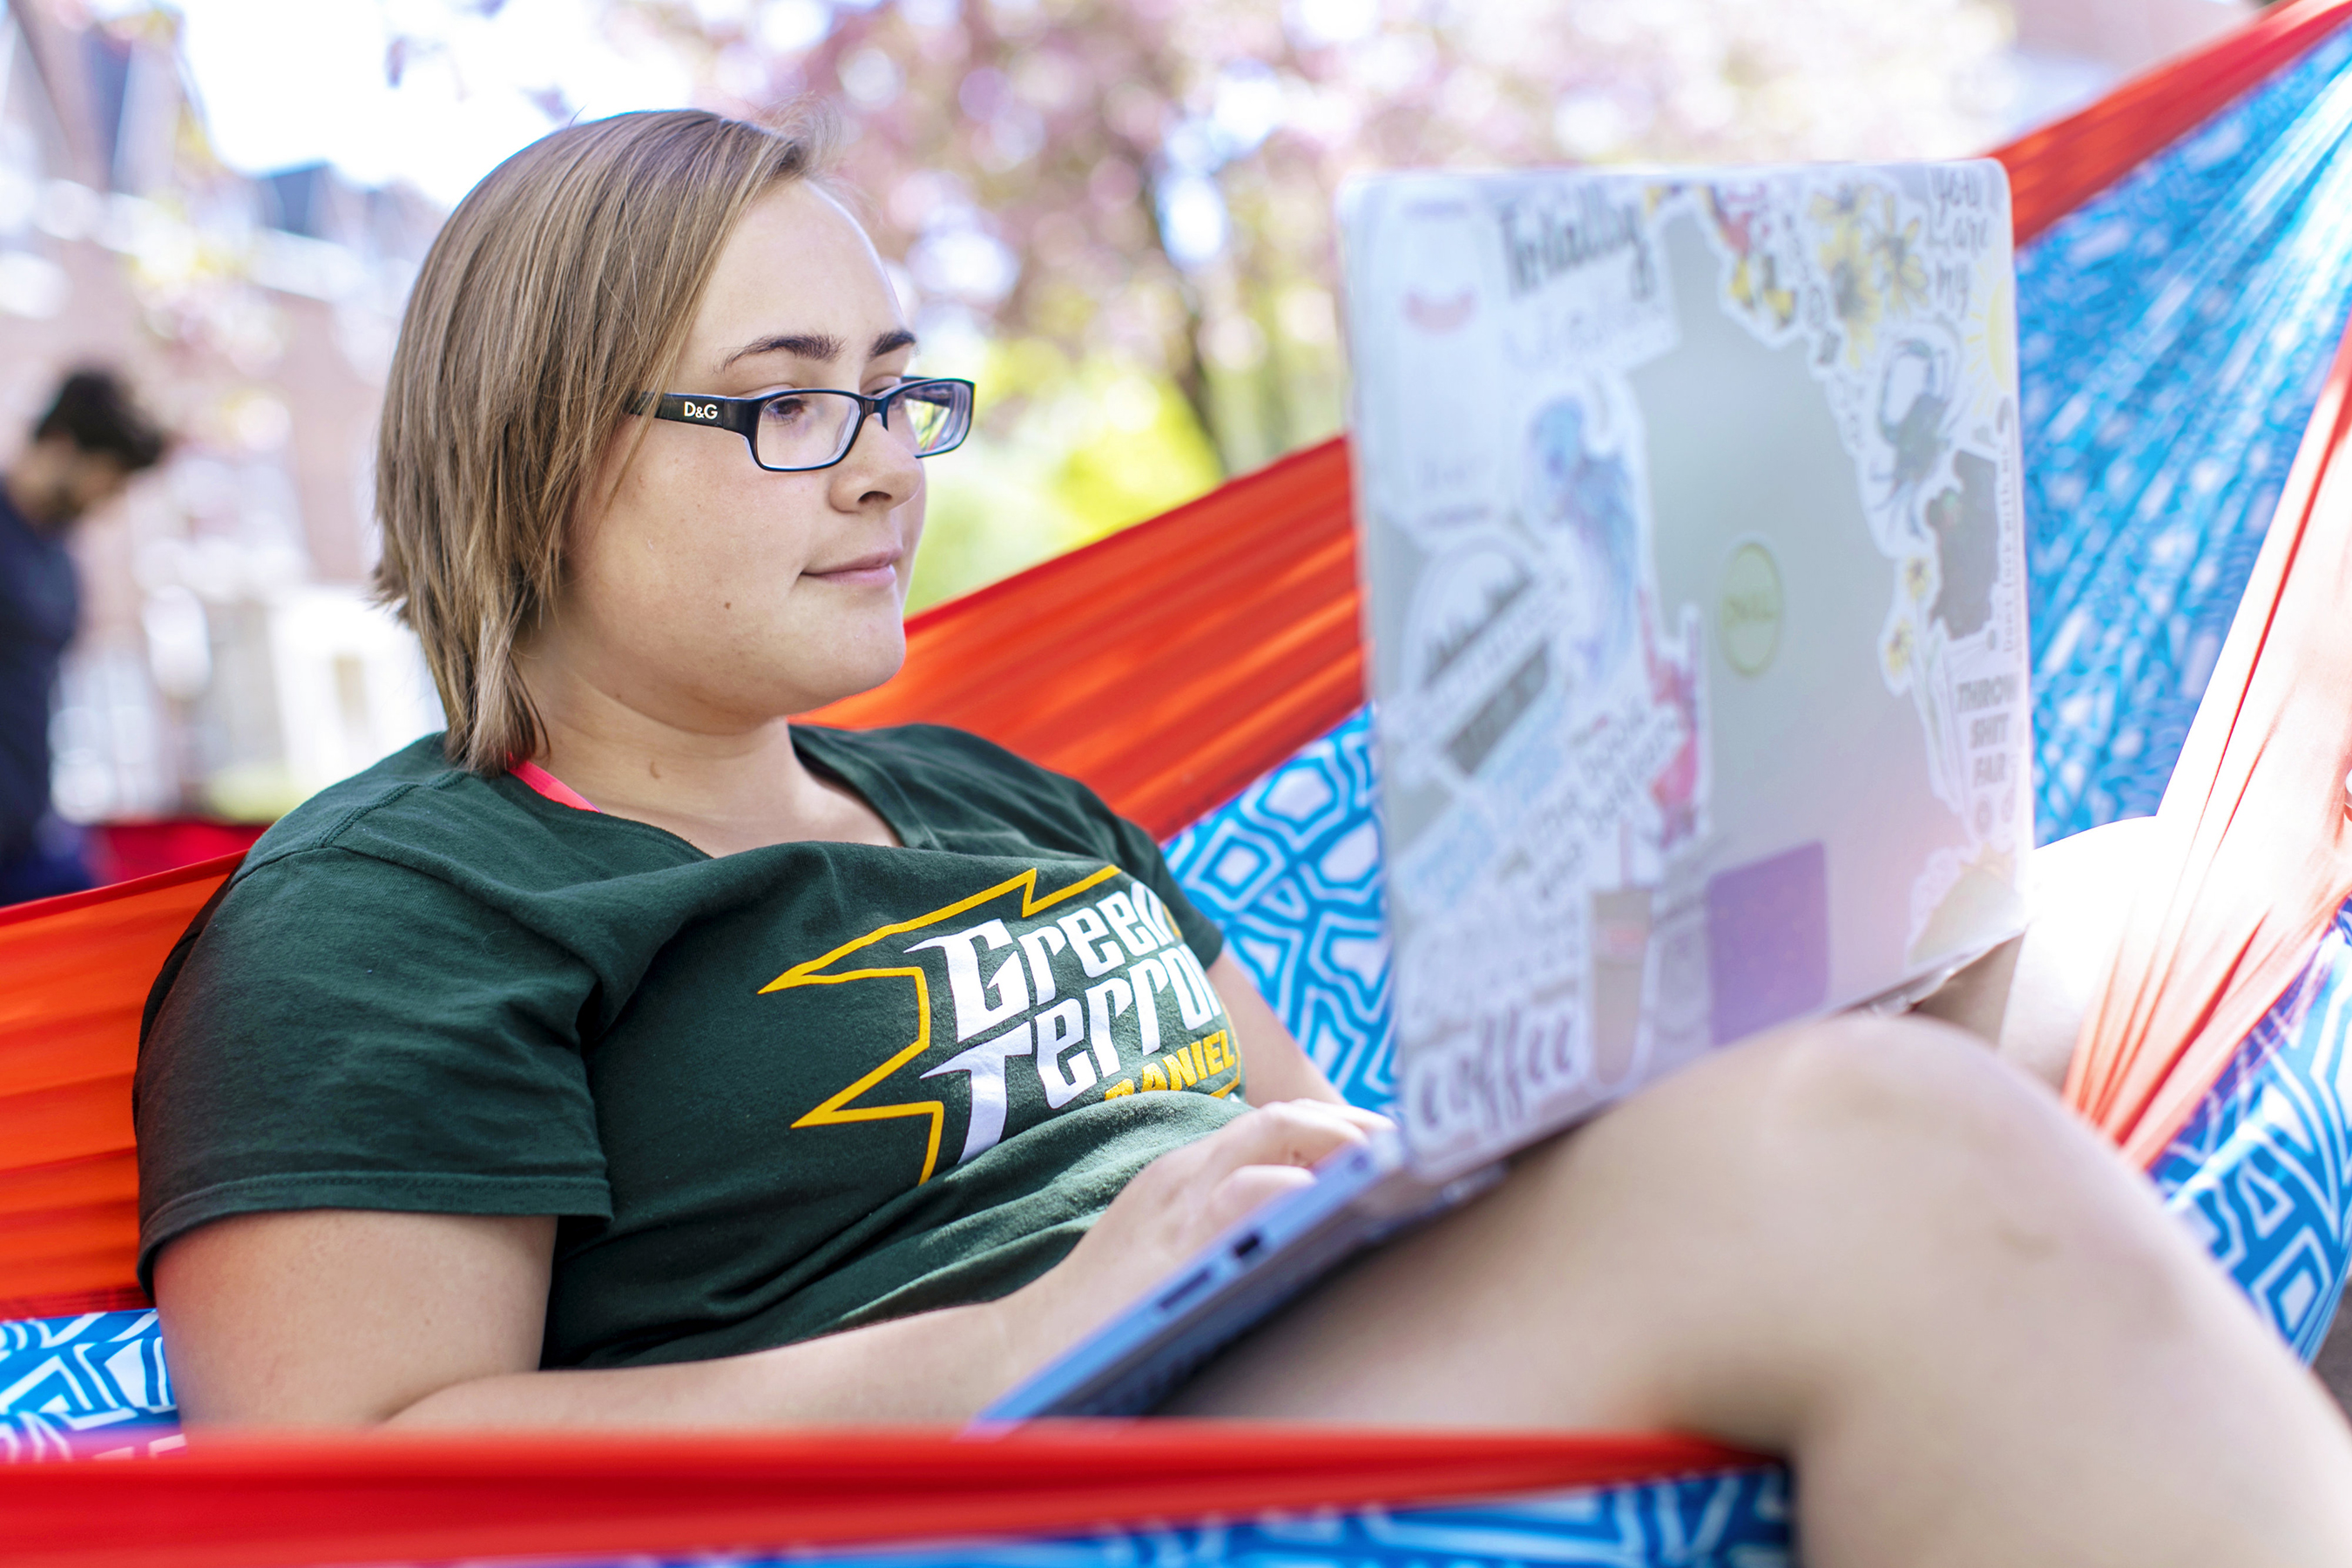 Student on computer in hammock on campus.